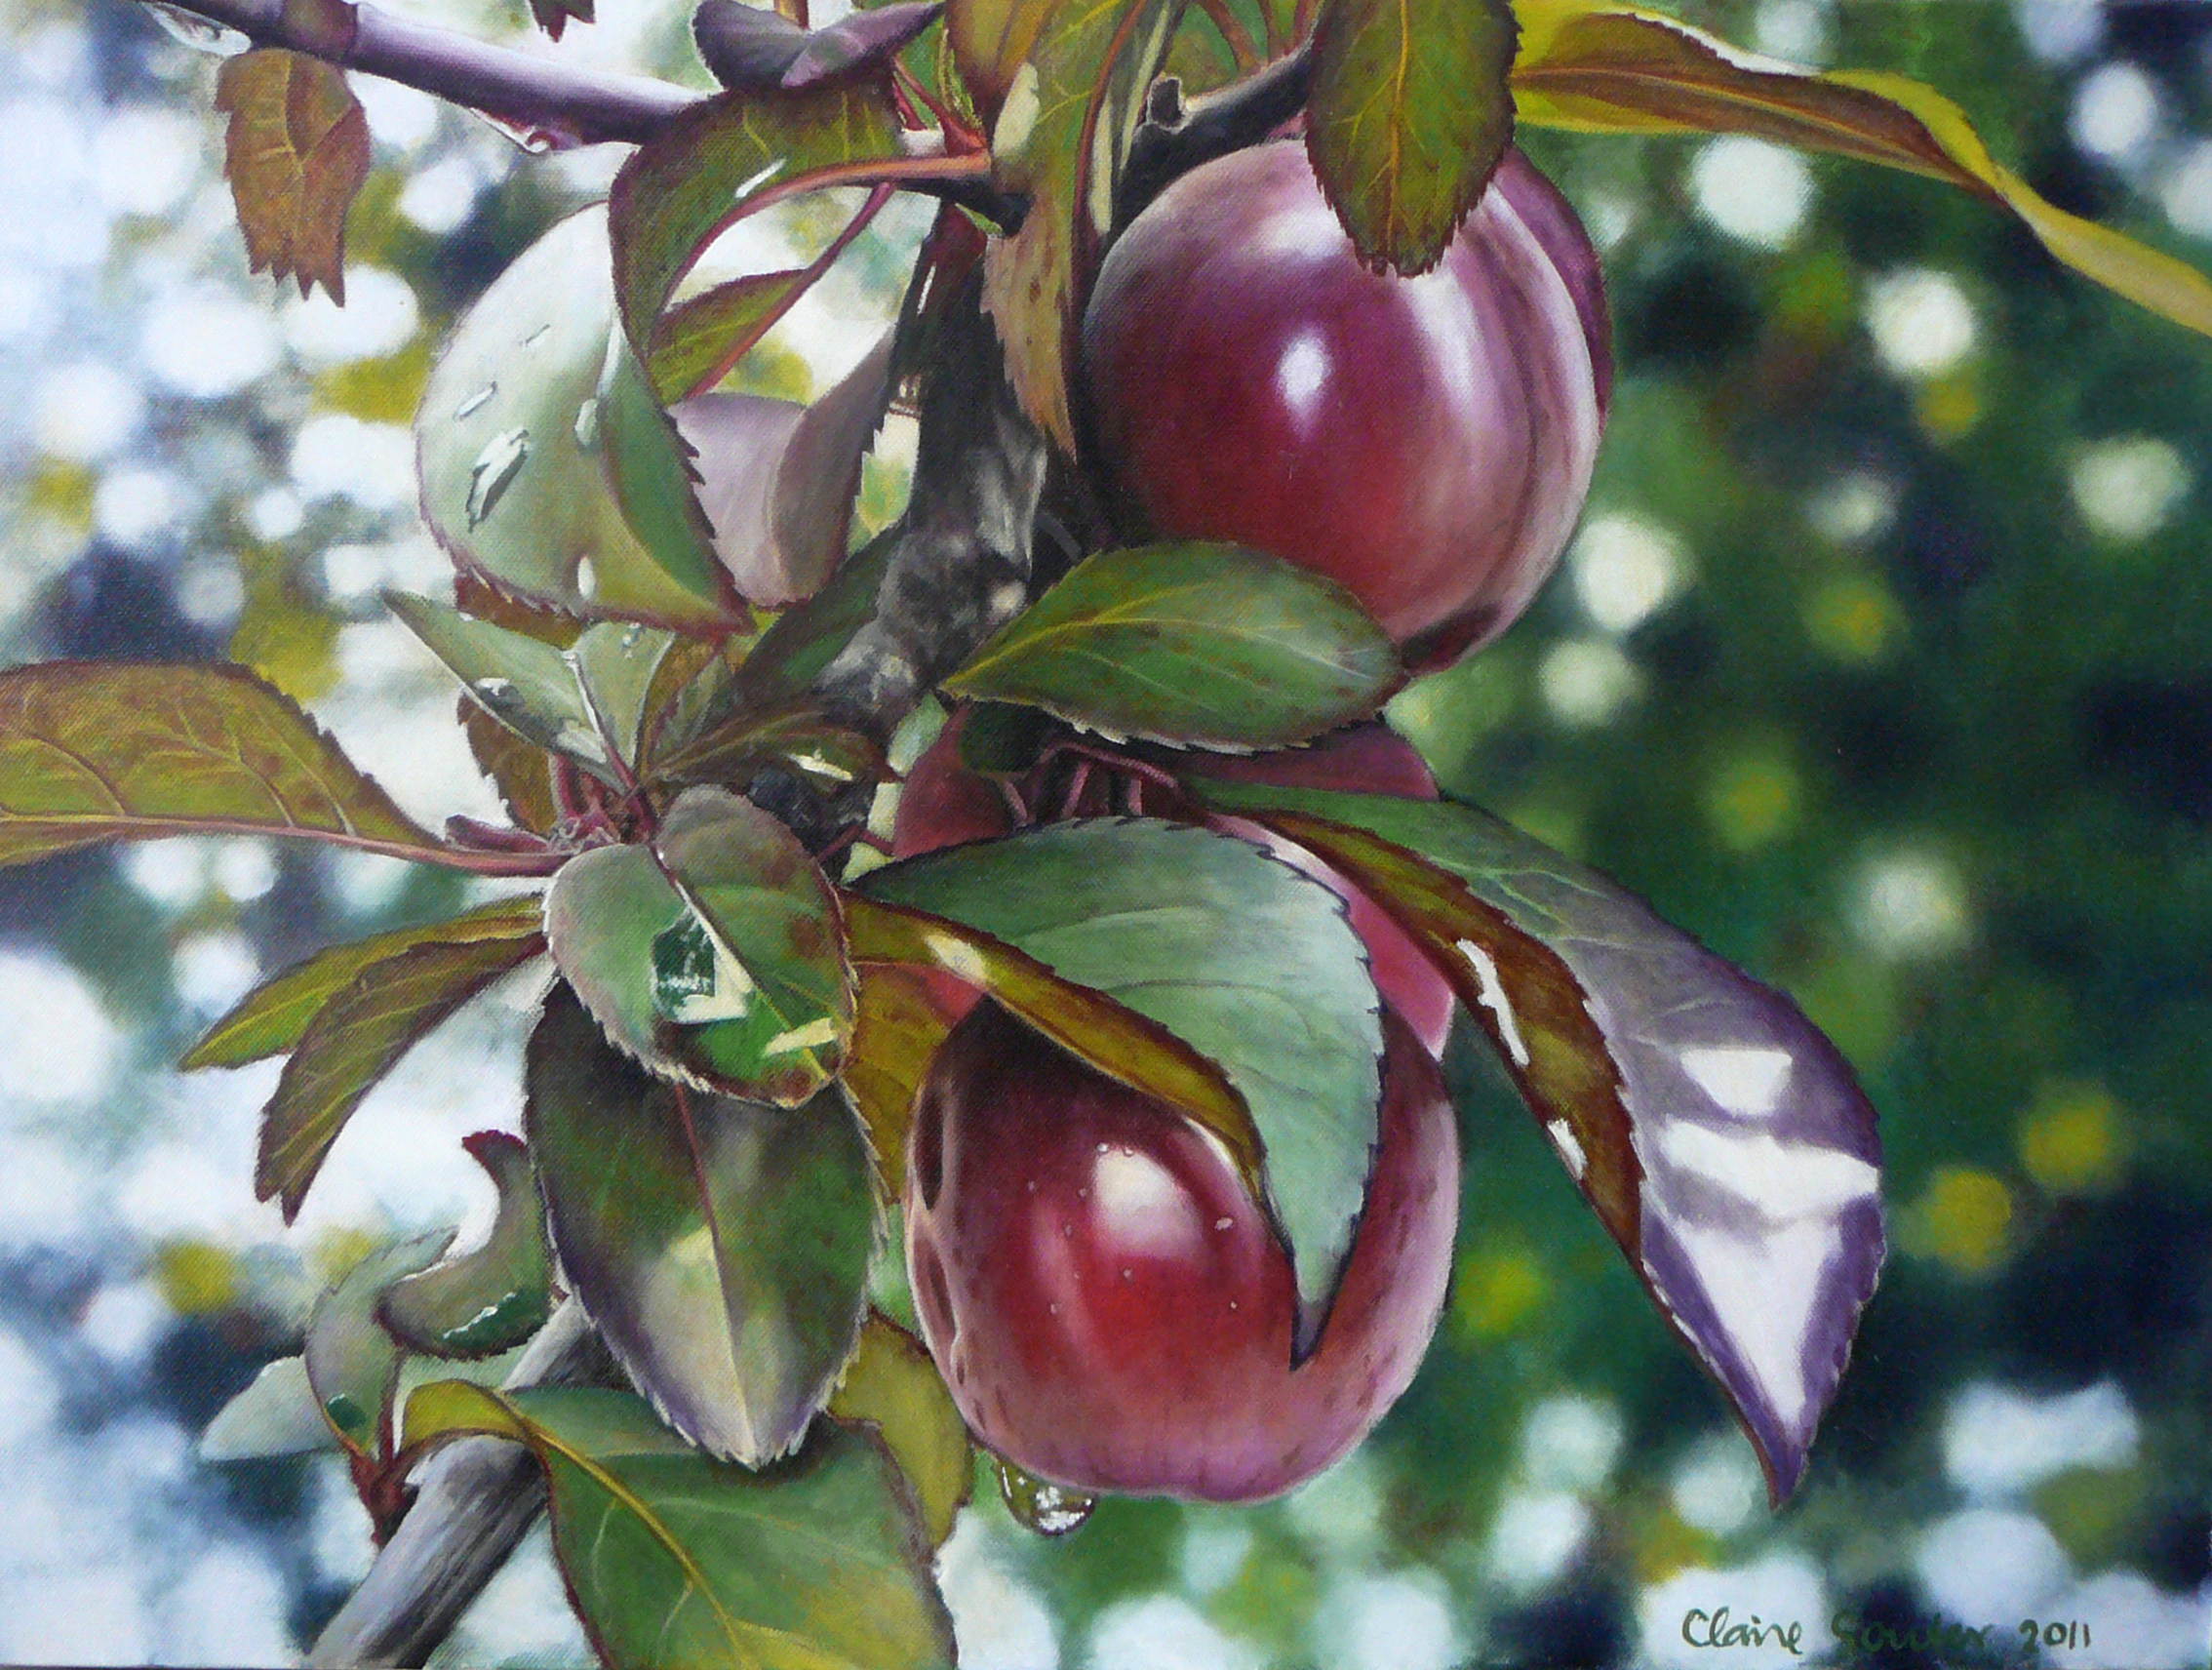 Penola plums